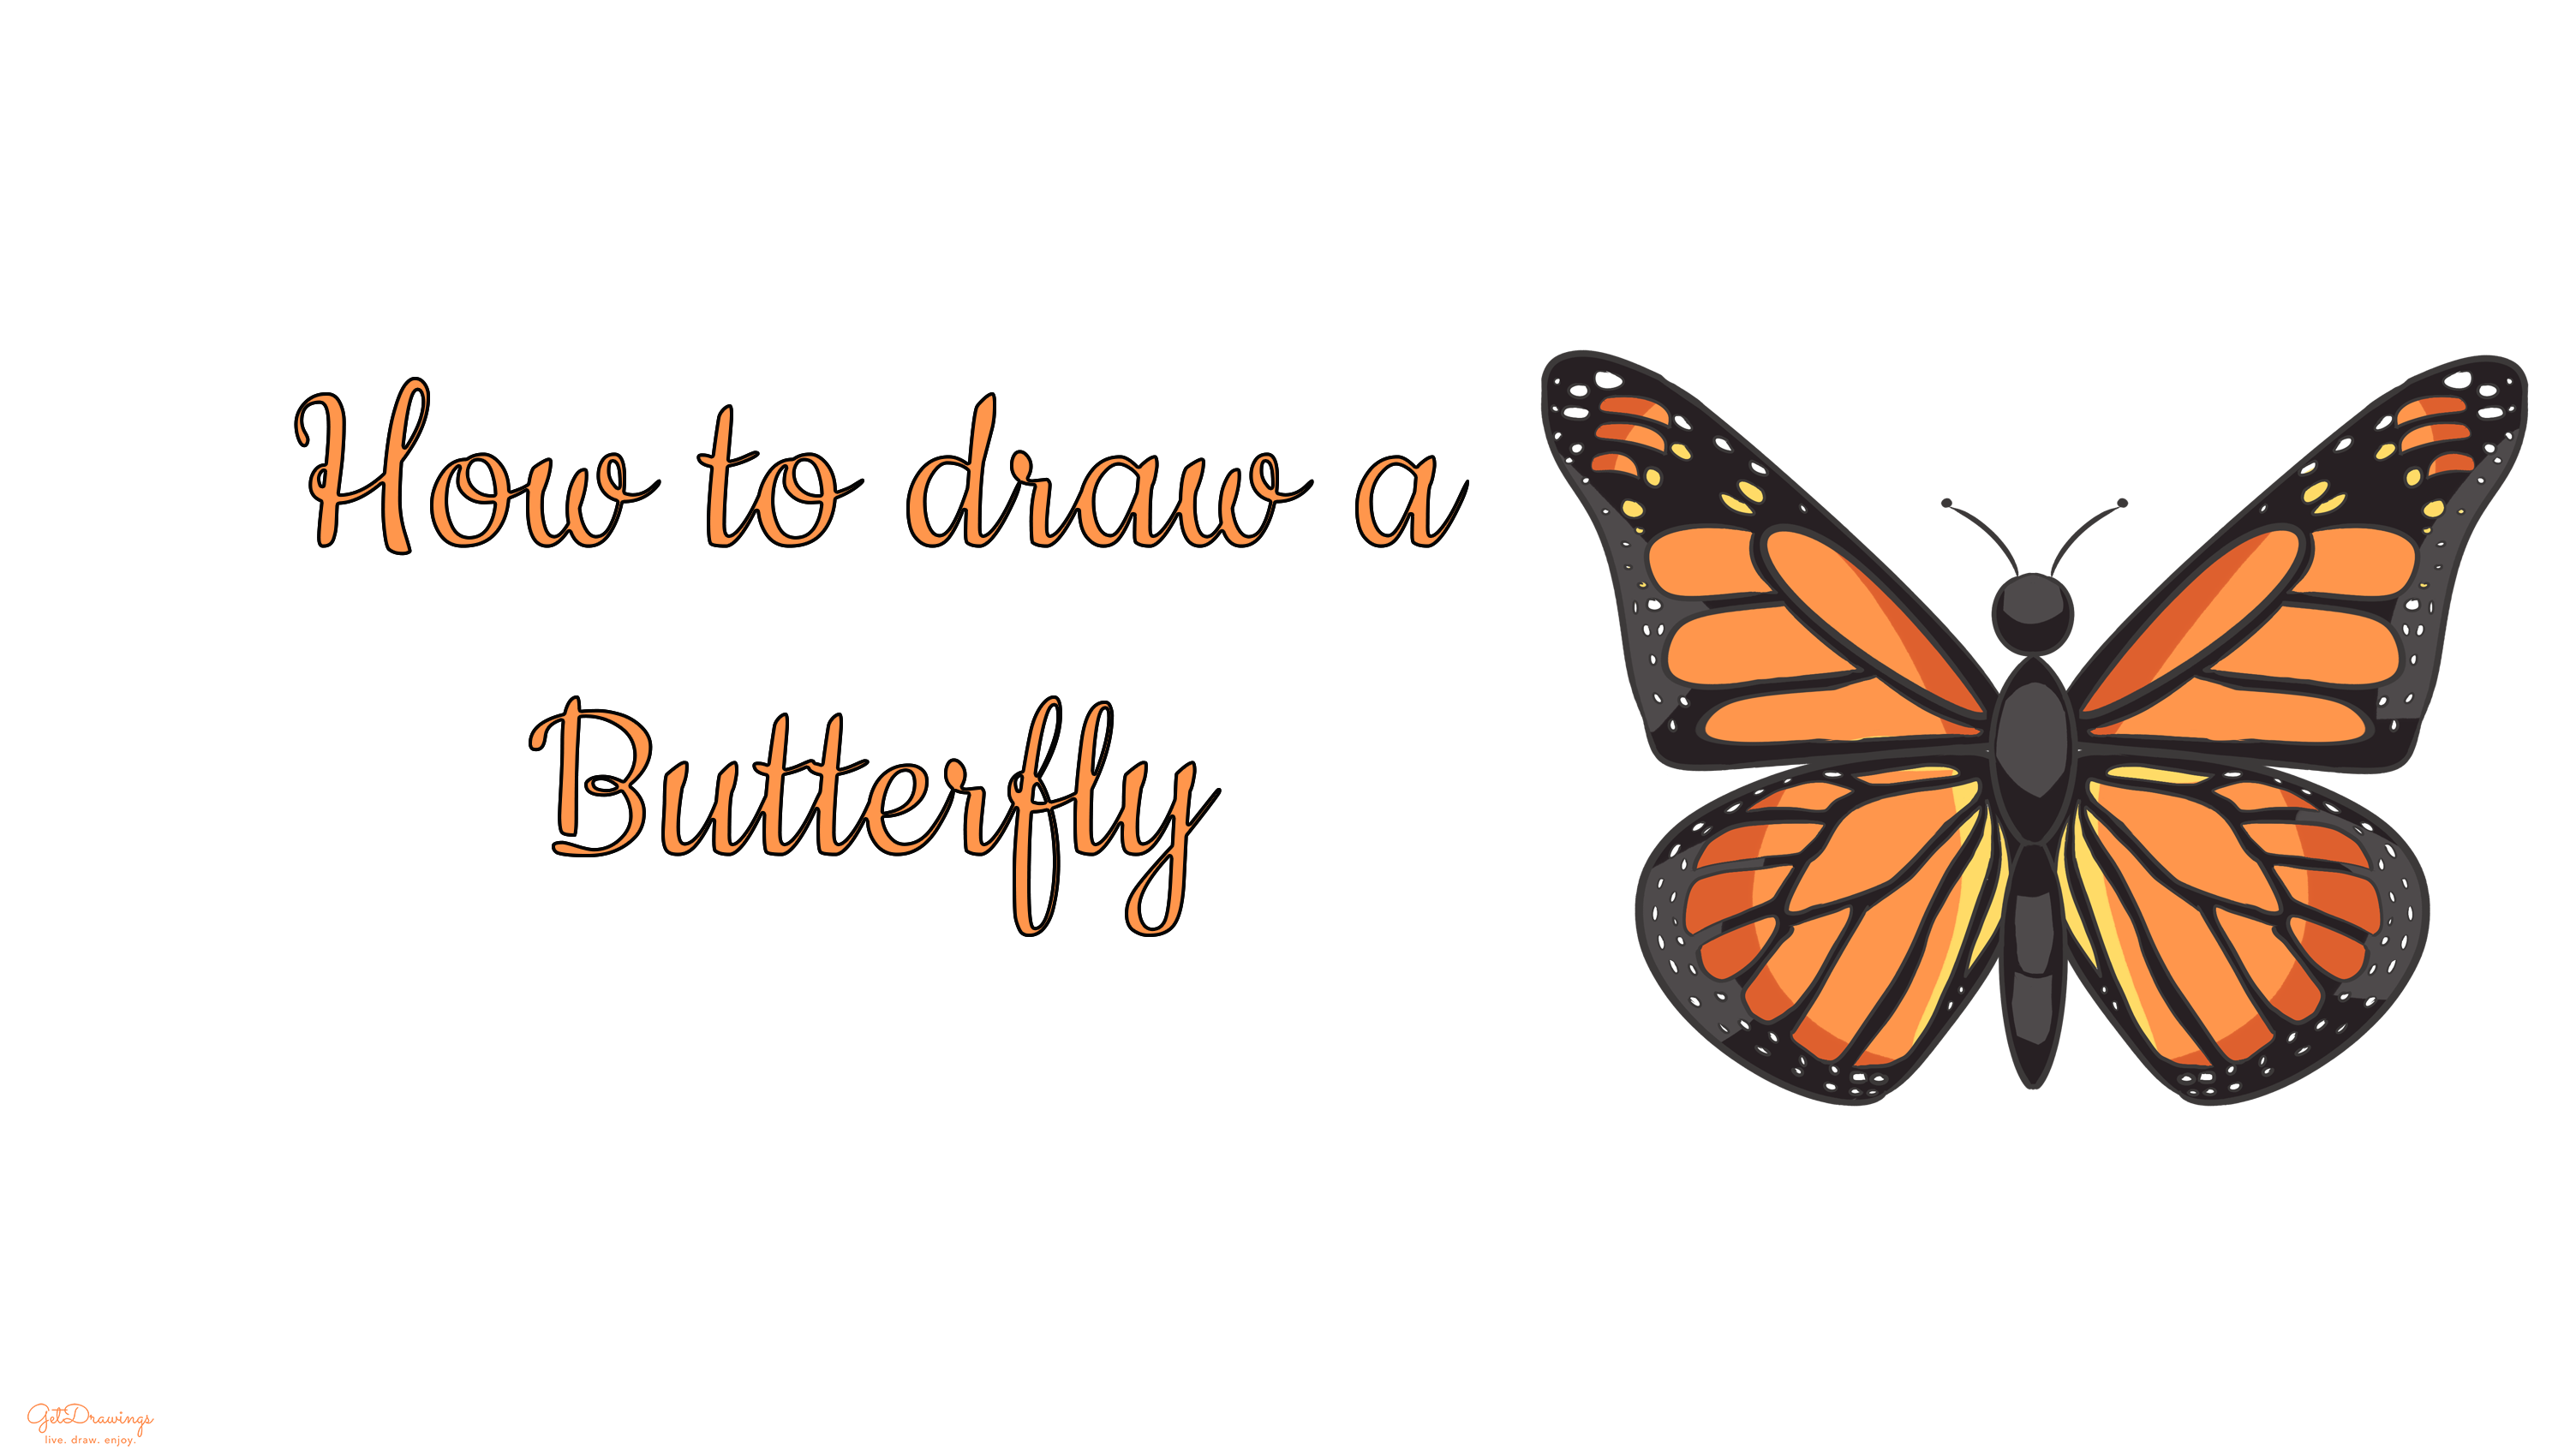 How to draw a Butterfly?